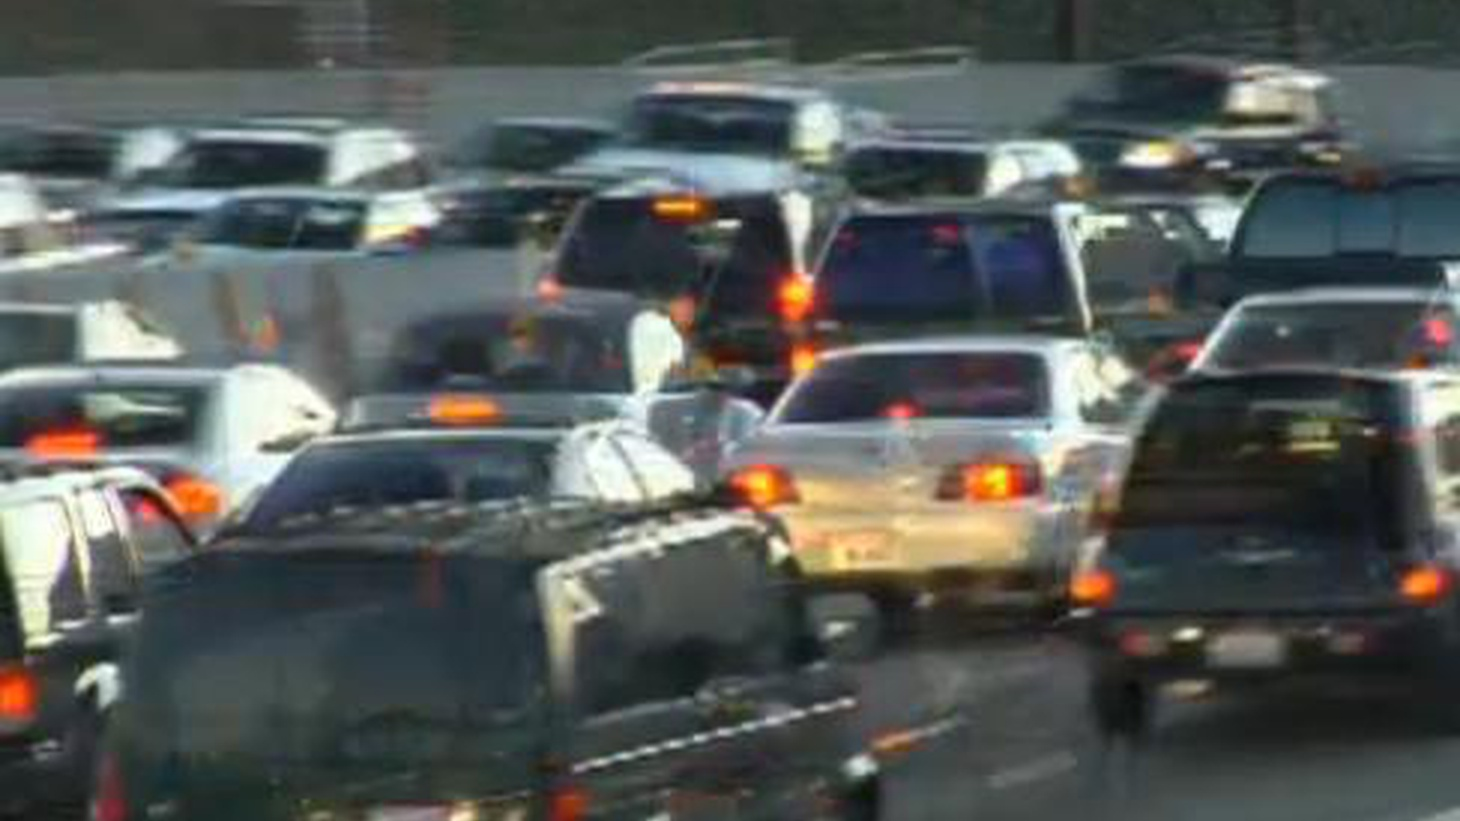 Soon, on parts of the I-10 and 110 freeways, it's going to cost to use the car pool lanes, even if you have a passenger. Will it work in LA?